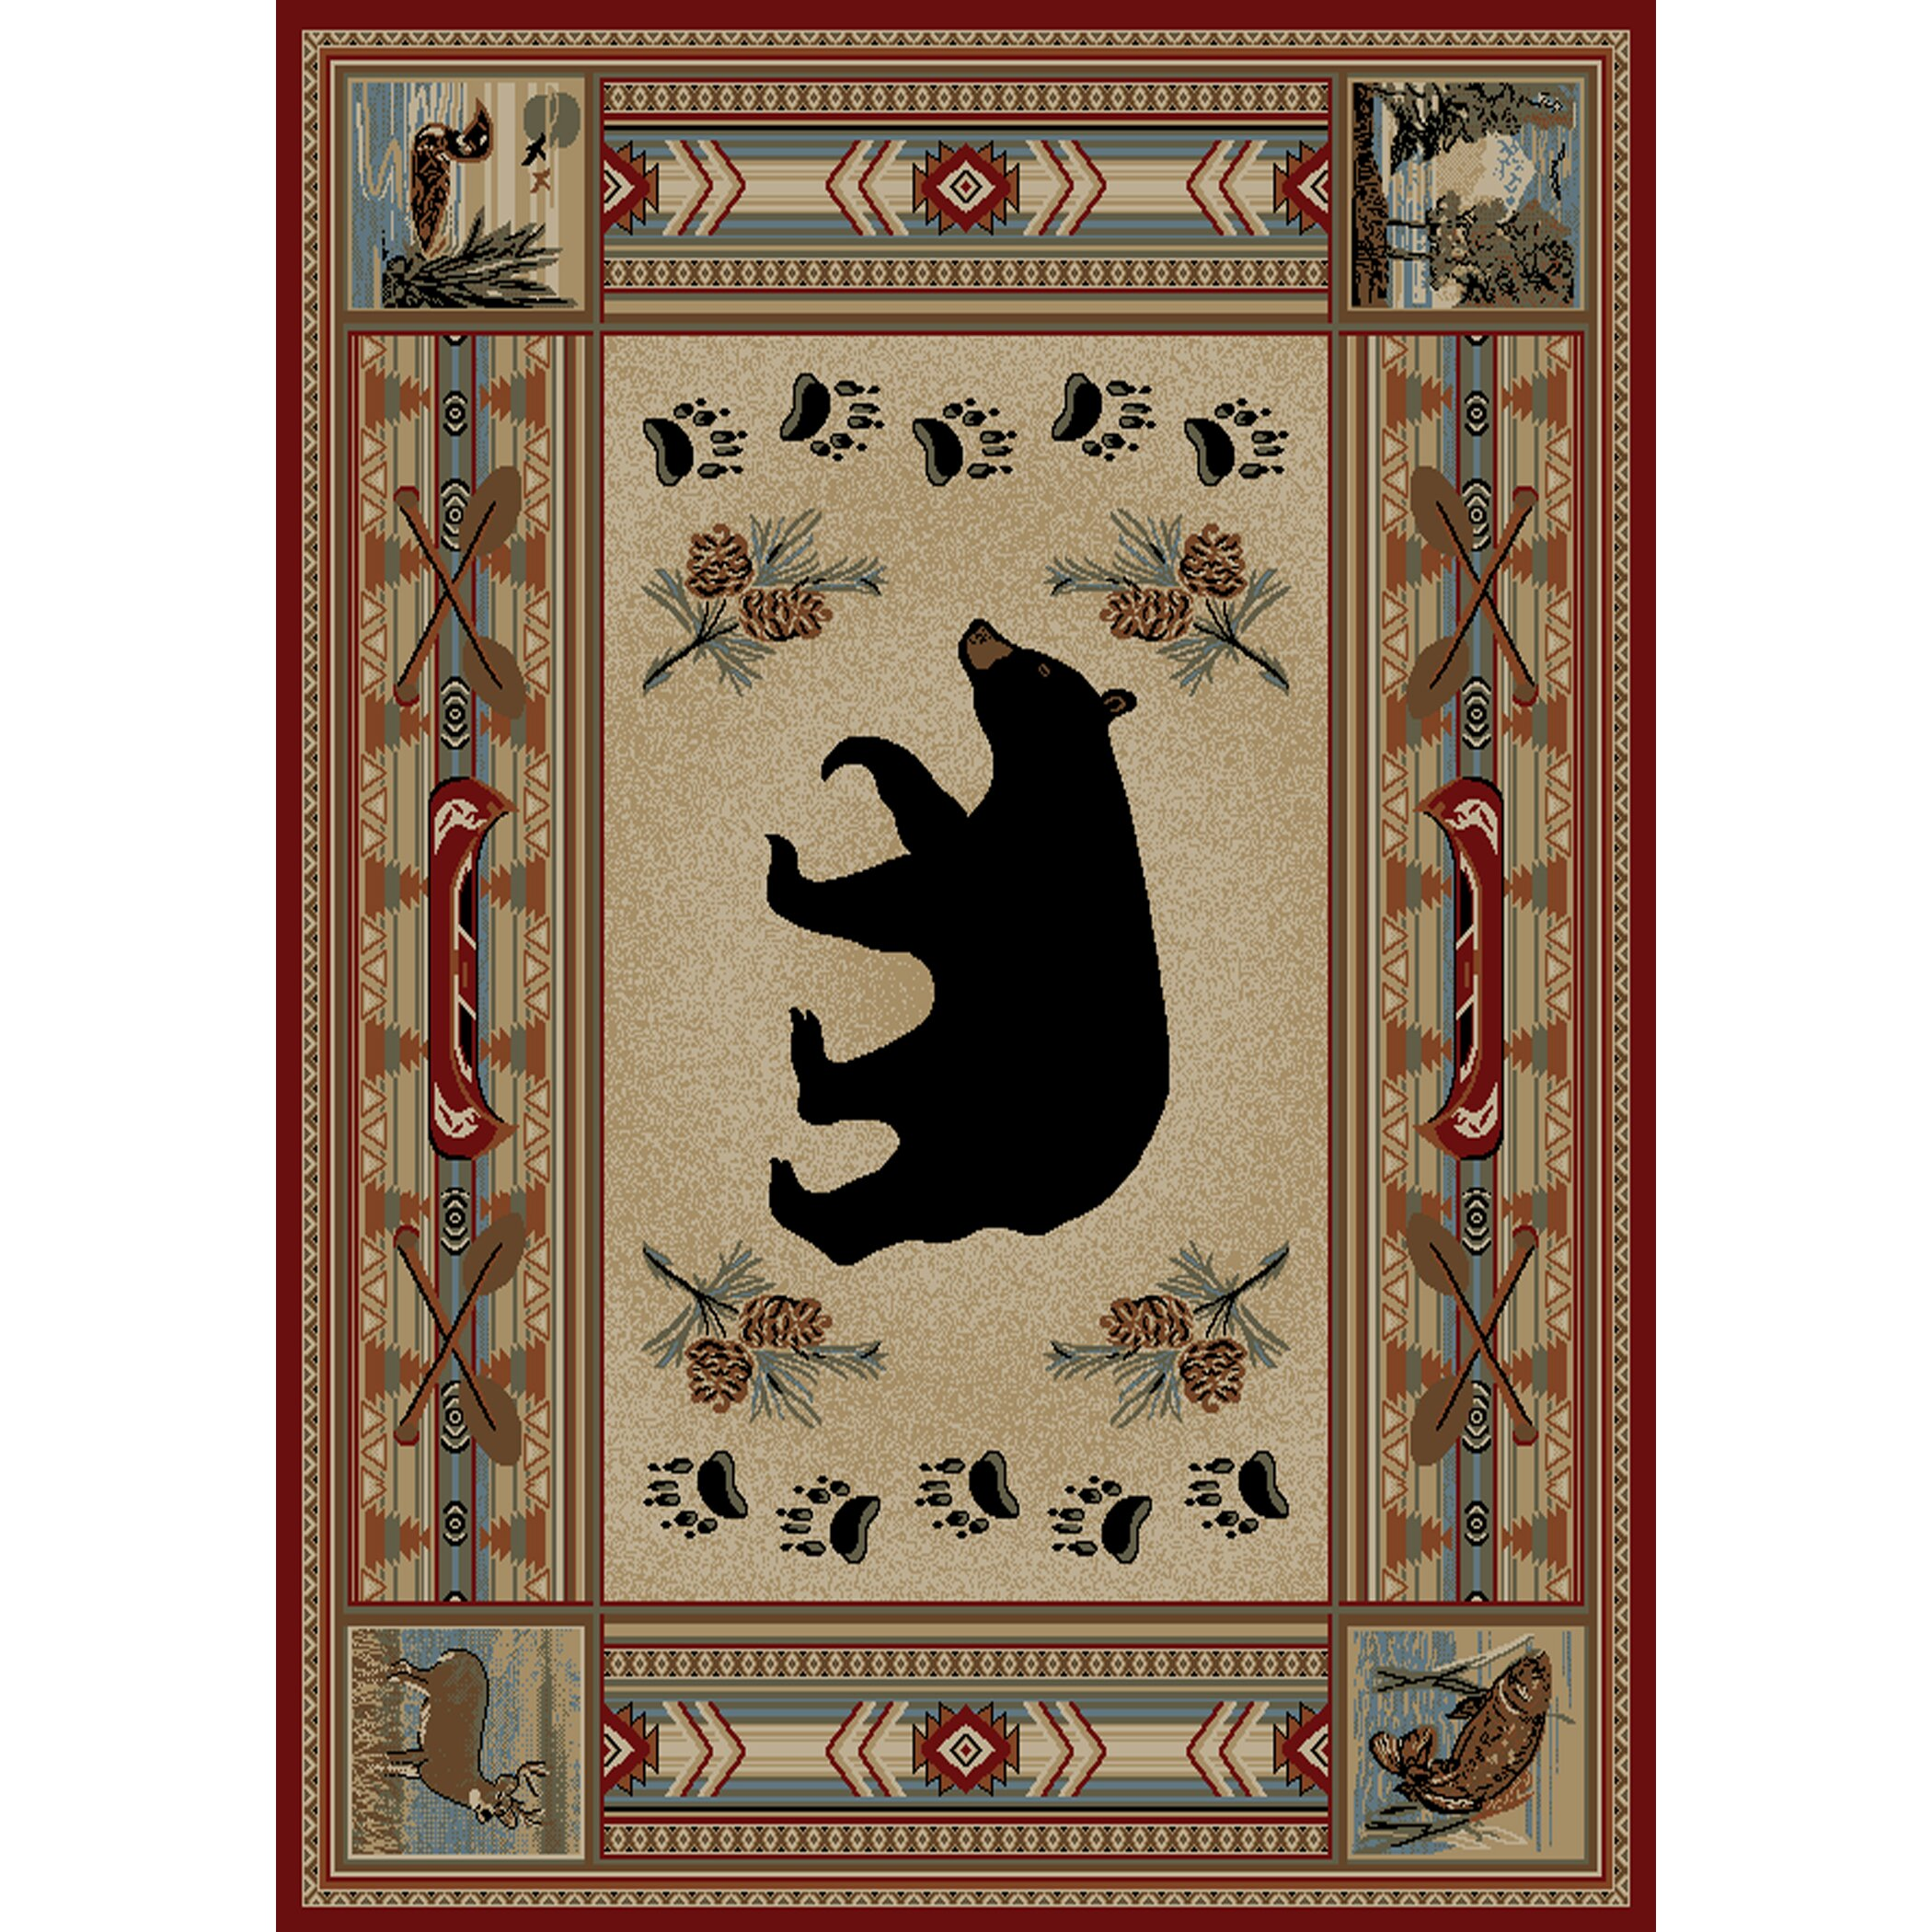 mayberry rug hearthside woodlands bear area rug - Rustic Area Rugs